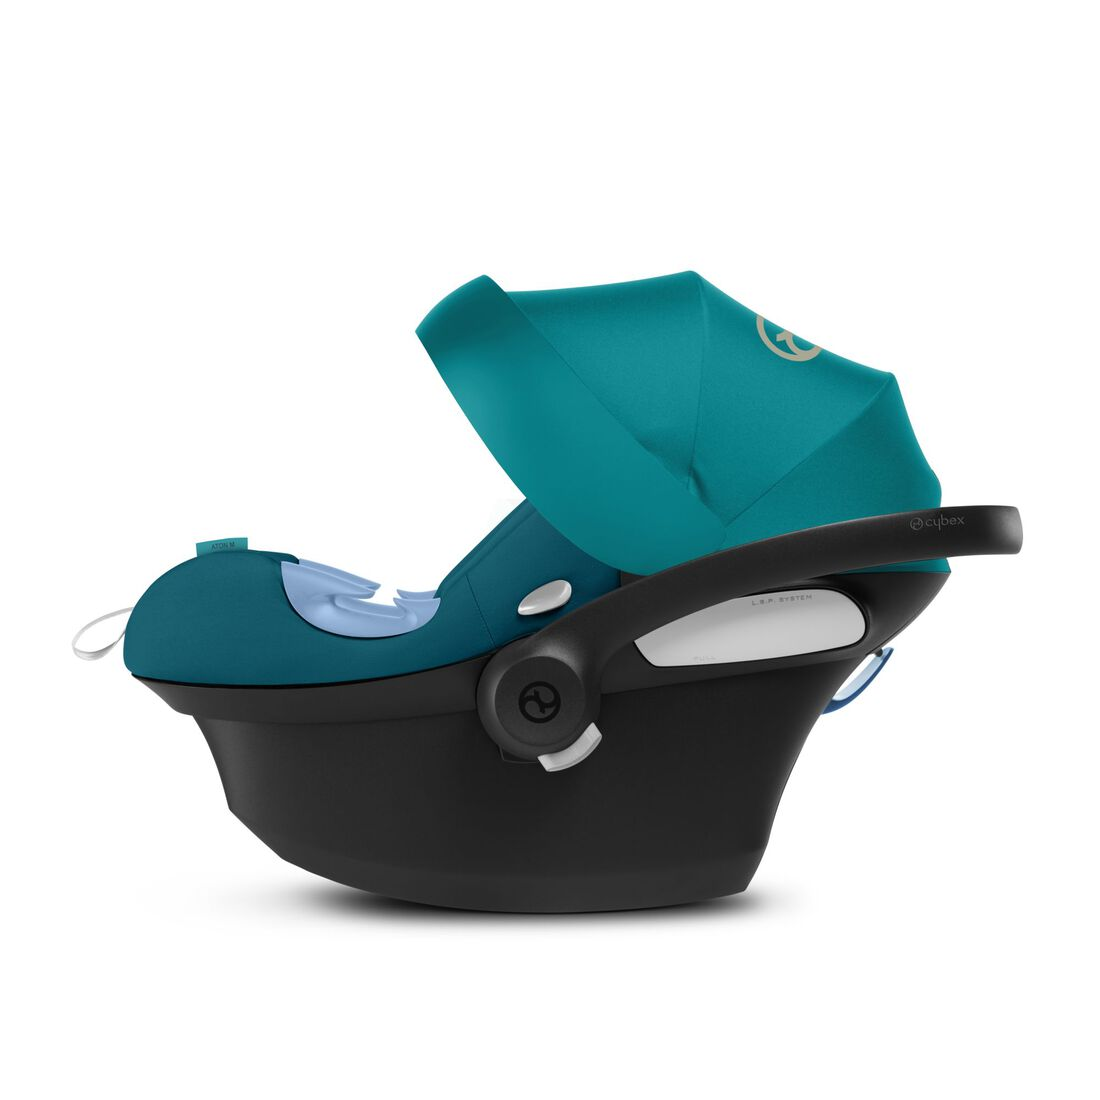 CYBEX Aton M - River Blue in River Blue large image number 4